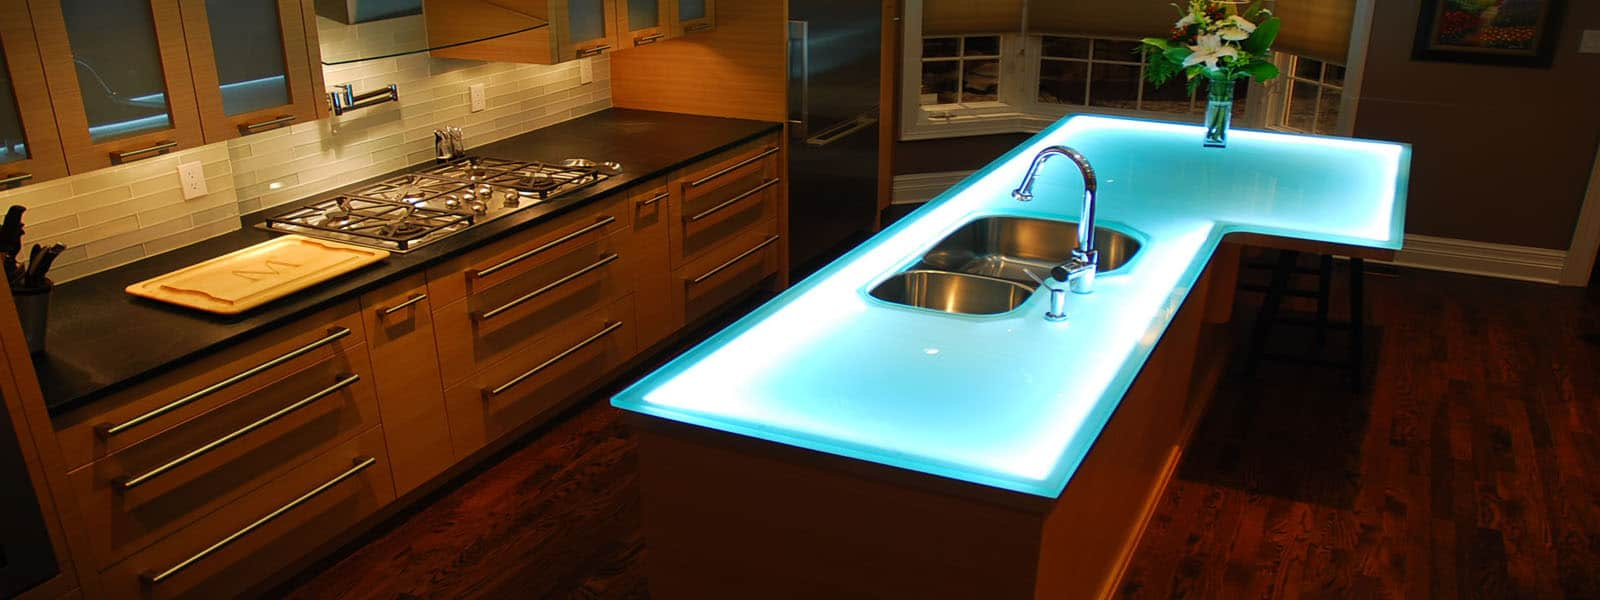 Kitchen Countertops Modern Kitchen Countertops From Unusual Materials 30 Ideas